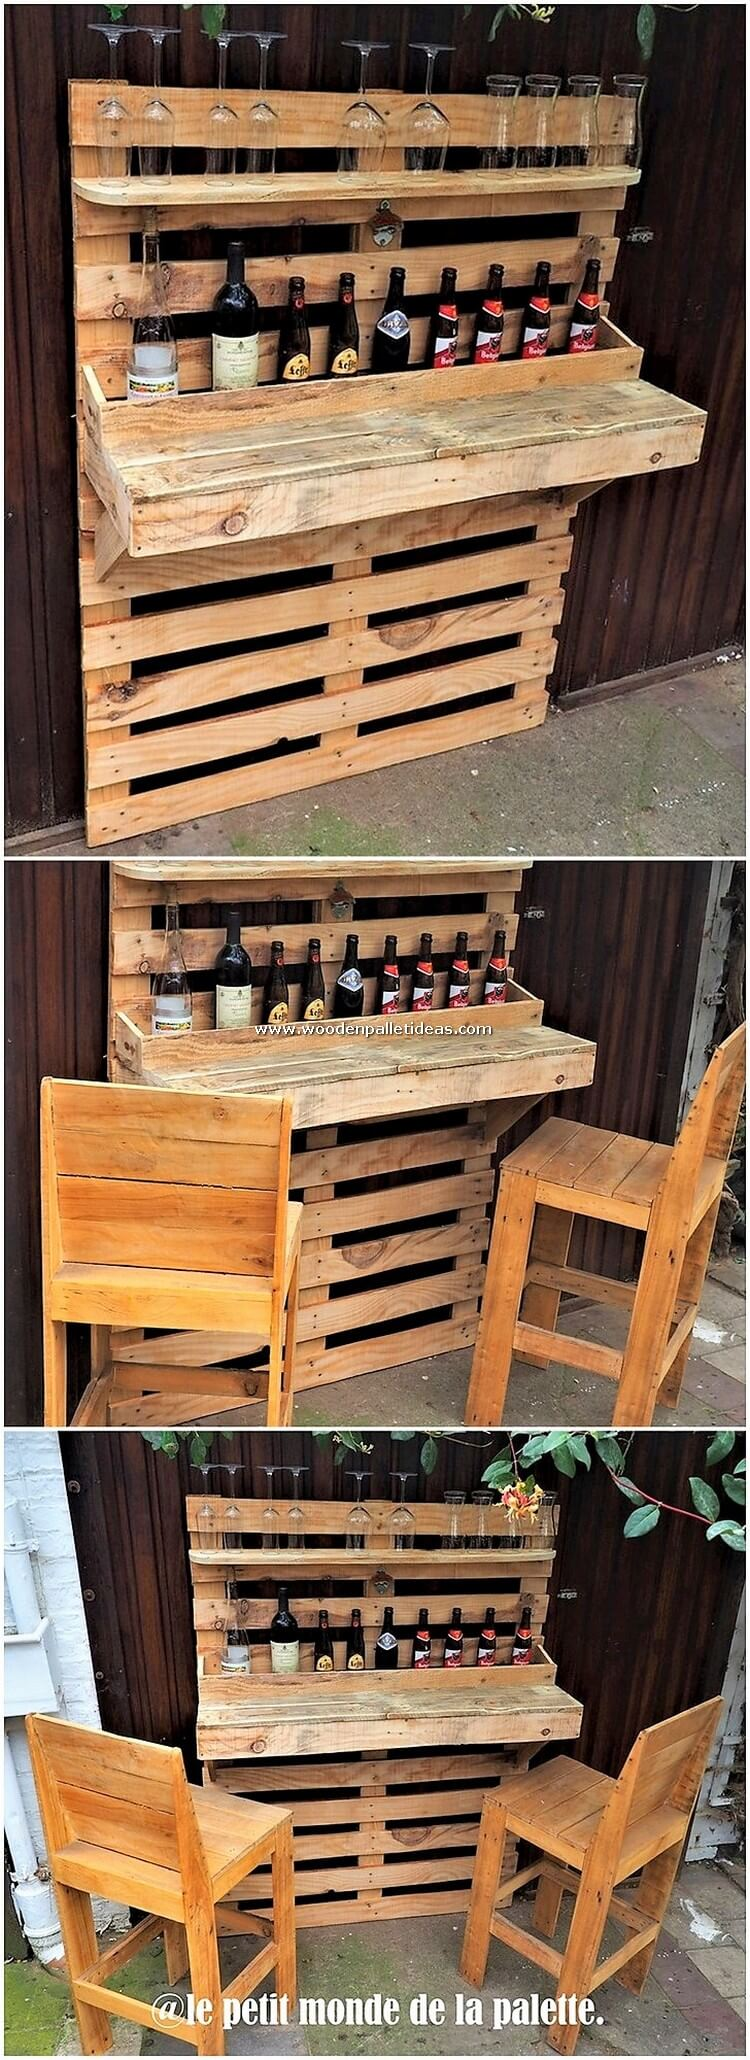 Pallet-Bar-Counter-and-Chairs